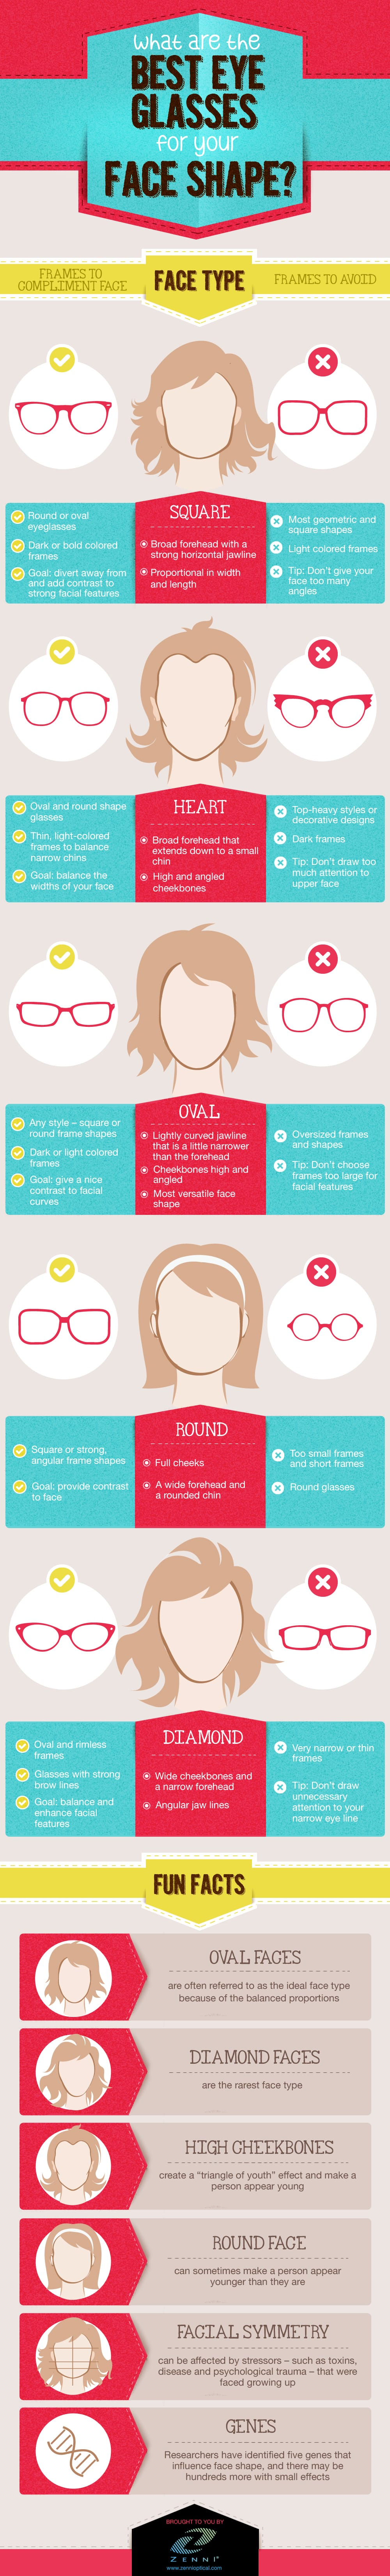 What Is The Right Glasses Frame For My Face : What are the Best Eyeglasses for Your Face Shape? - Blog ...